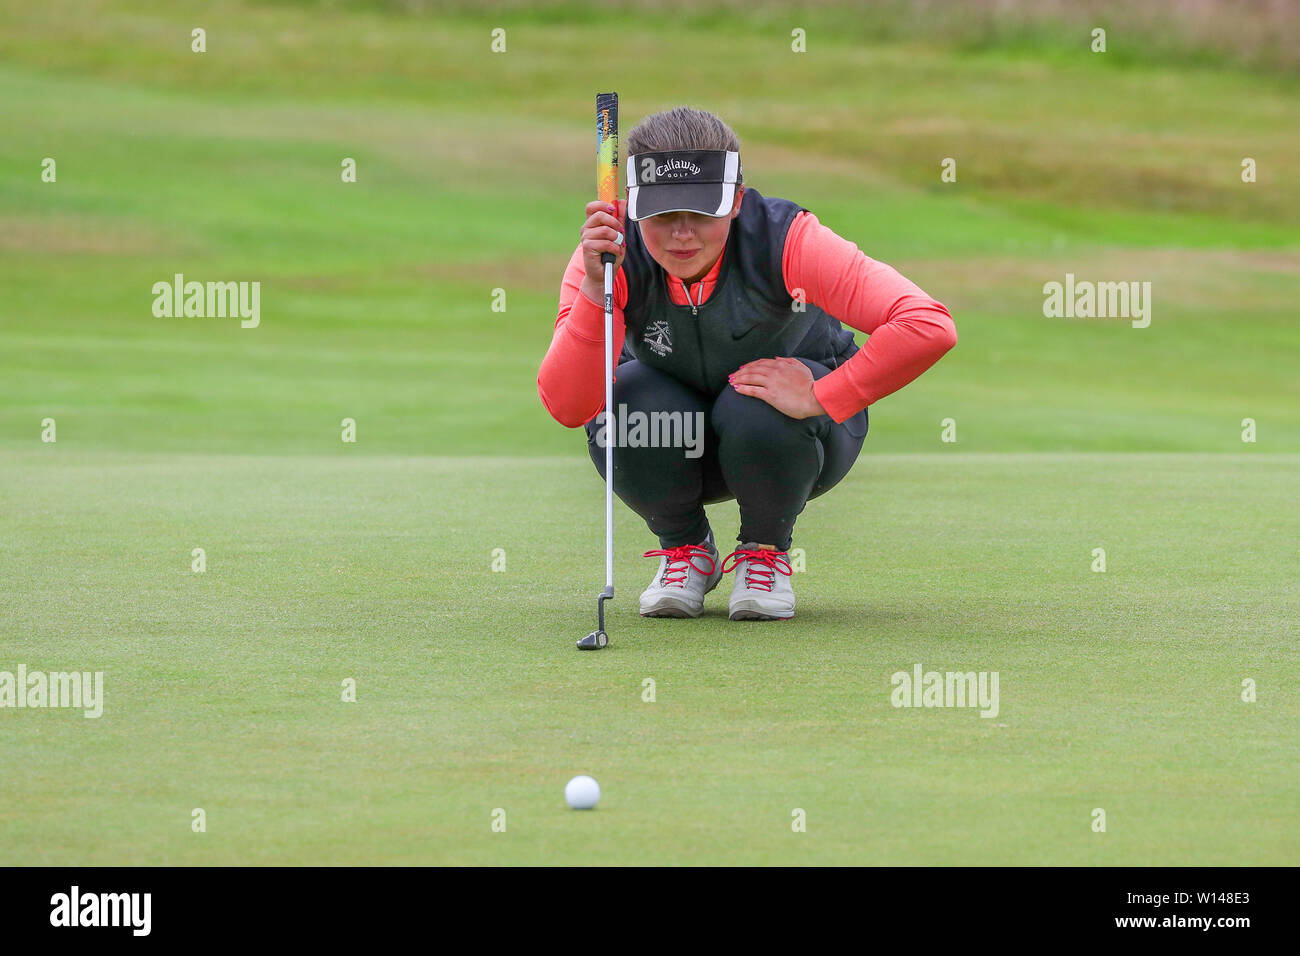 Troon, Scotland, UK. 30th June 2019. On the final day of the Competition the remaining 8 golfers, playing matchplay golf competed over Barassie Links Golf course, Troon in blustery wind and squally rain conditions to try and win the Championship Cup and the Clark Rosebowl. Image of ELLIE DOCHERTY epresenting Moray GC linng up a putt on the 14th green Credit: Findlay/Alamy Live News - Stock Image